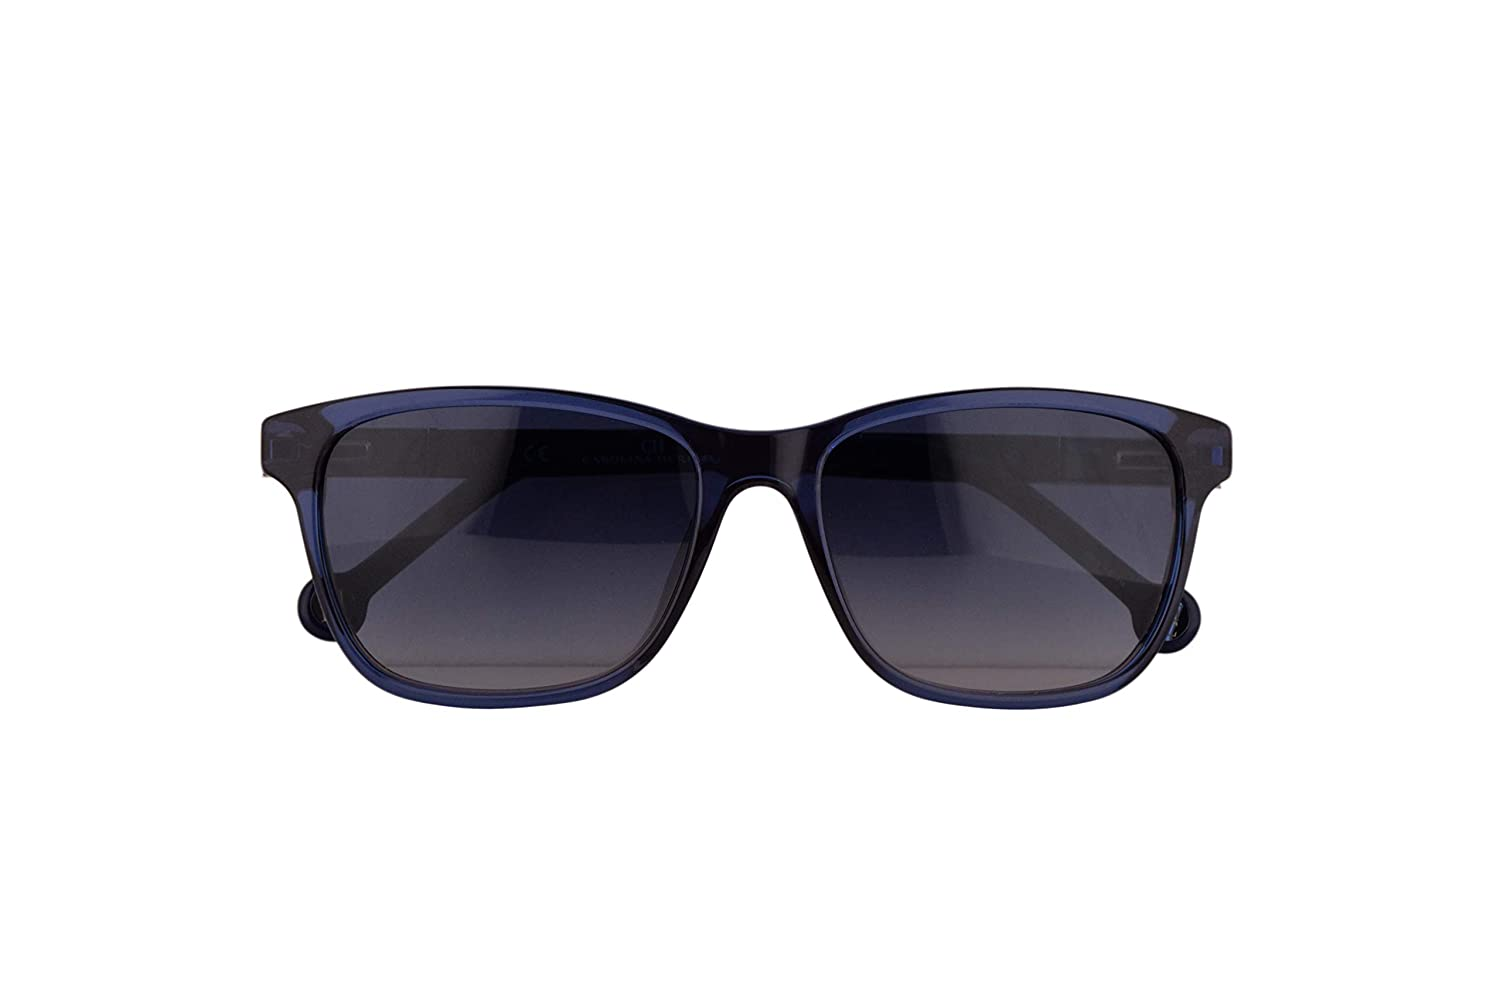 Amazon.com: Carolina Herrera SHE643 Sunglasses Blue ...